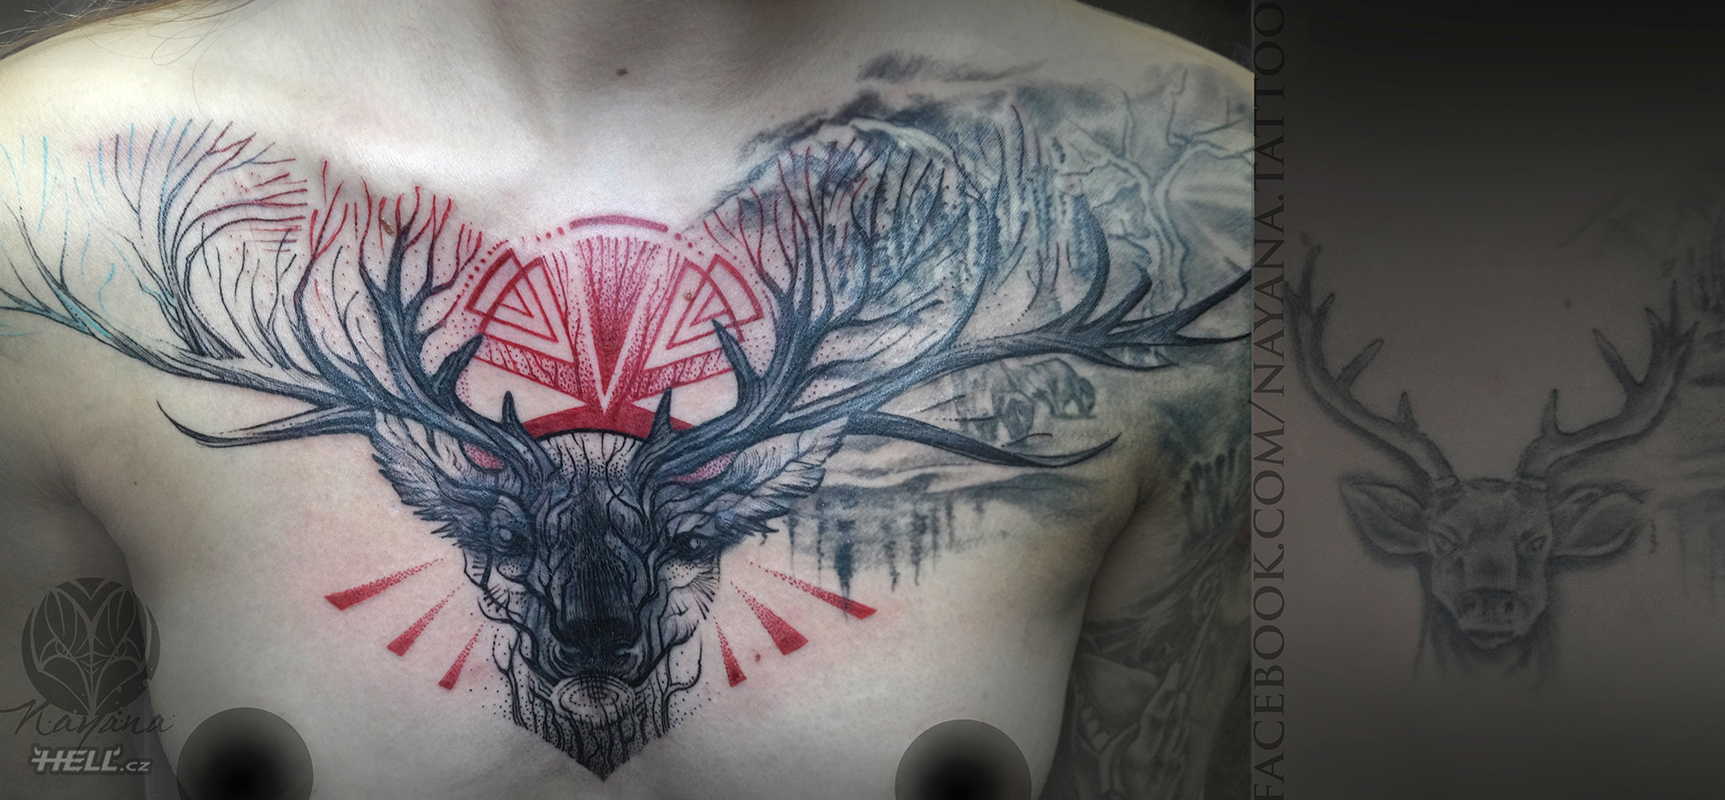 hell_tattoo_nayana_cover_up2.jpg